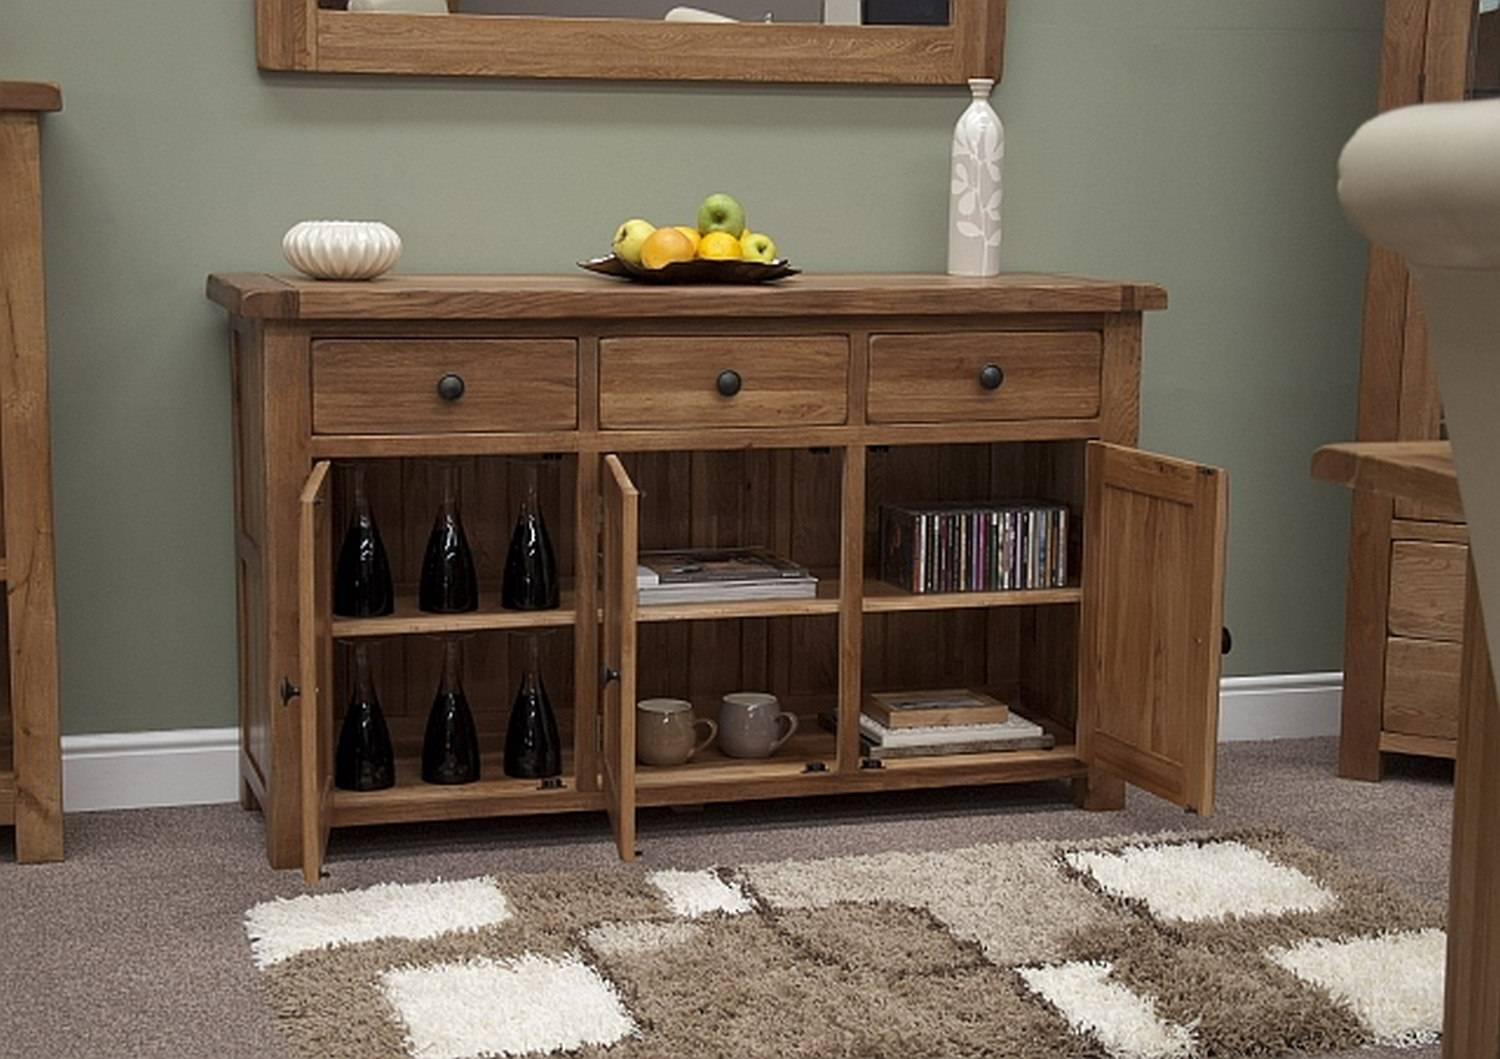 Awesome Sideboard For Living Room Home Design Very Nice Simple At for Sideboards For Living Room (Image 1 of 30)